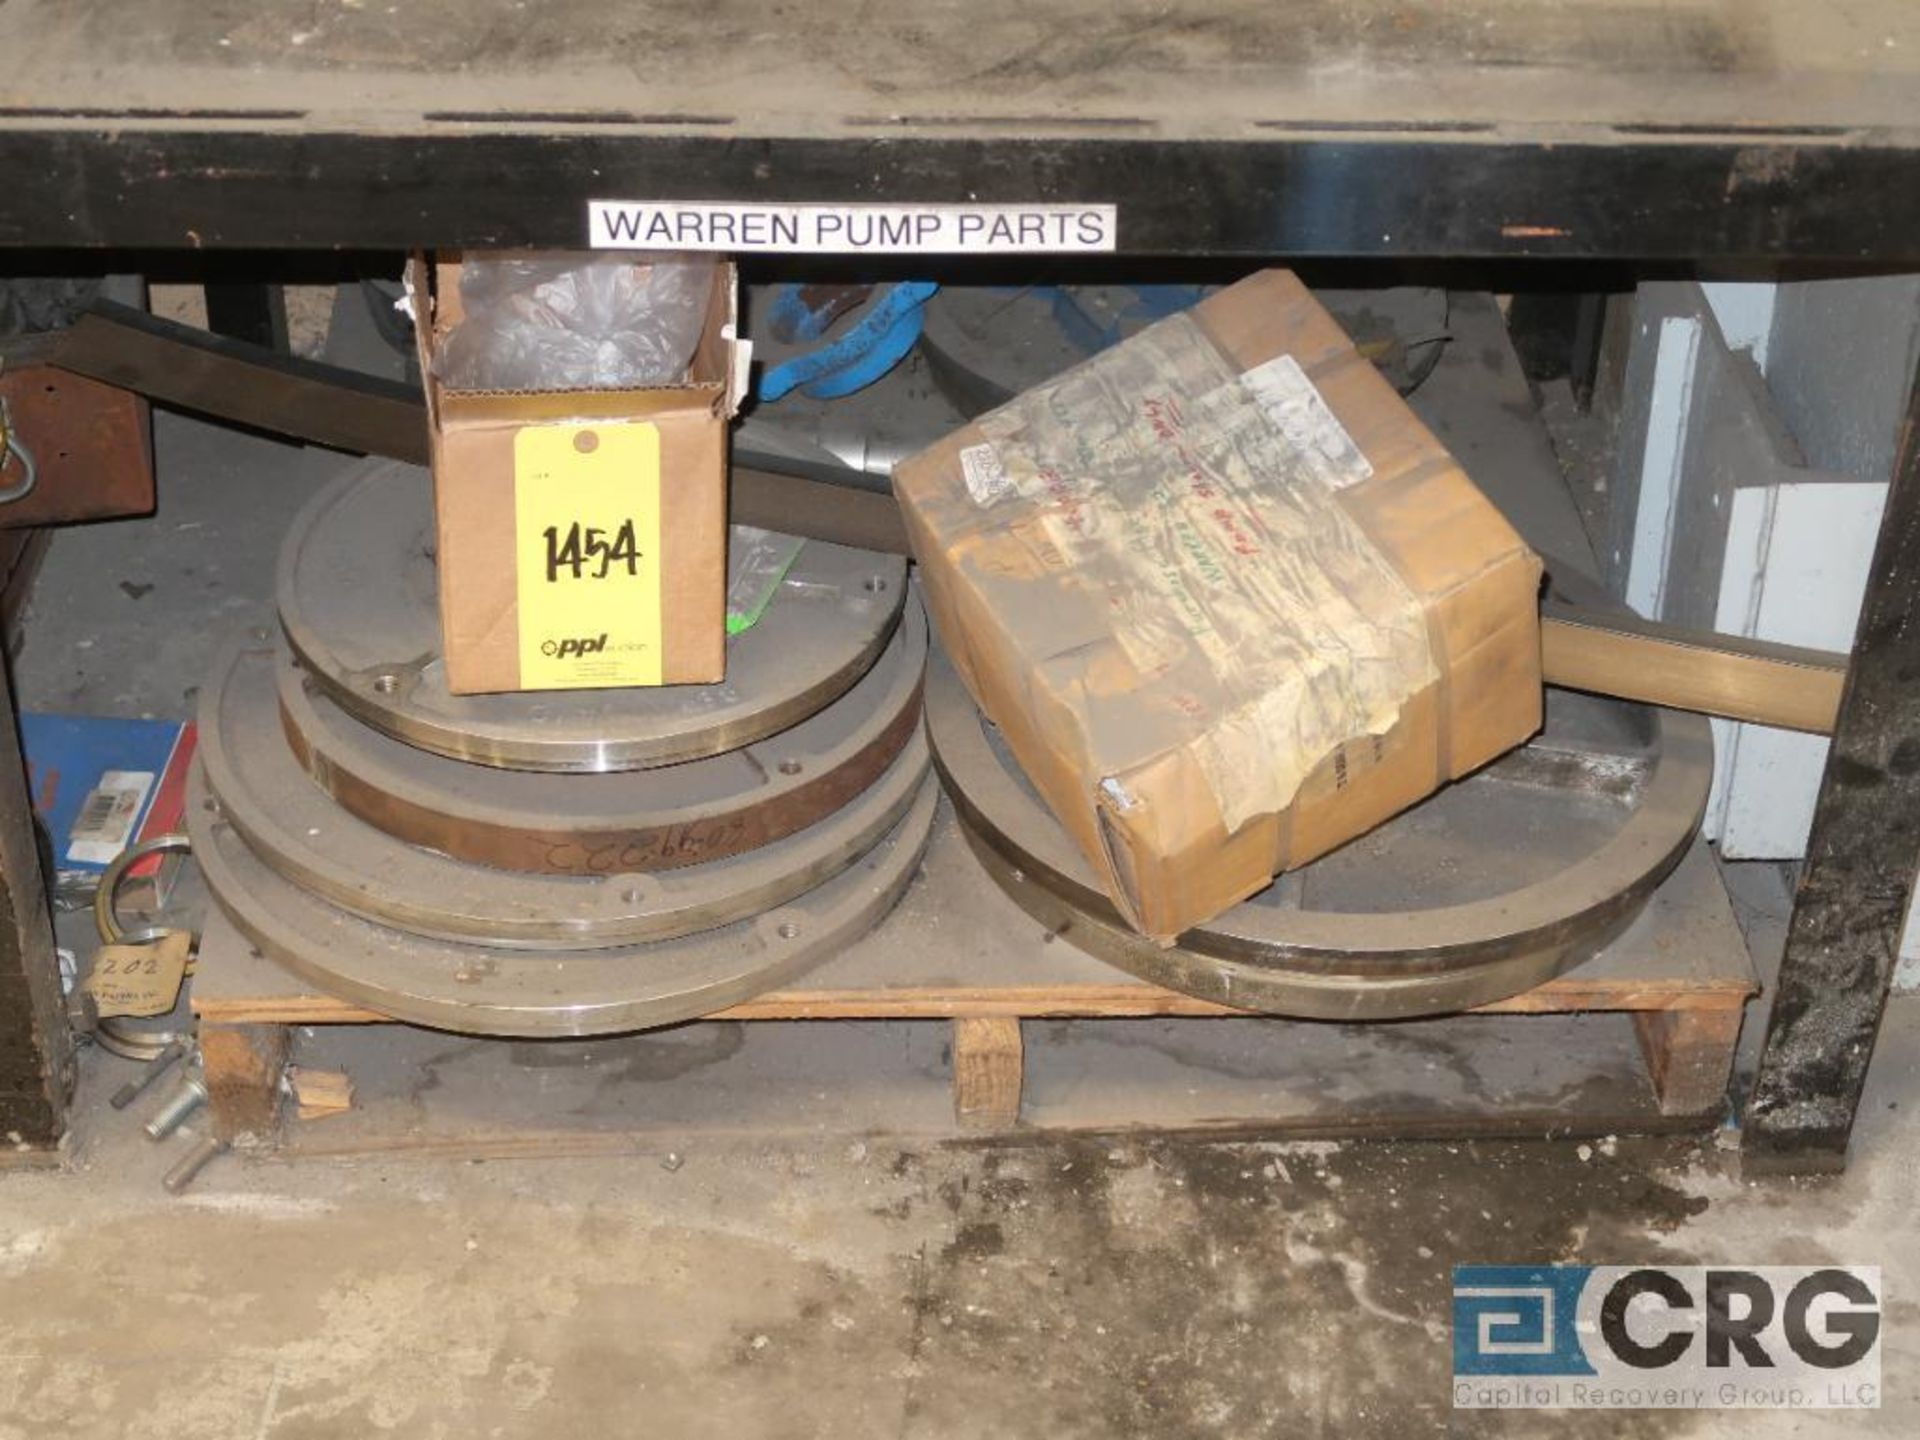 Lot of (5) sections of assorted Warren parts including cassing, impeller, and face plate (Basement - Image 3 of 3